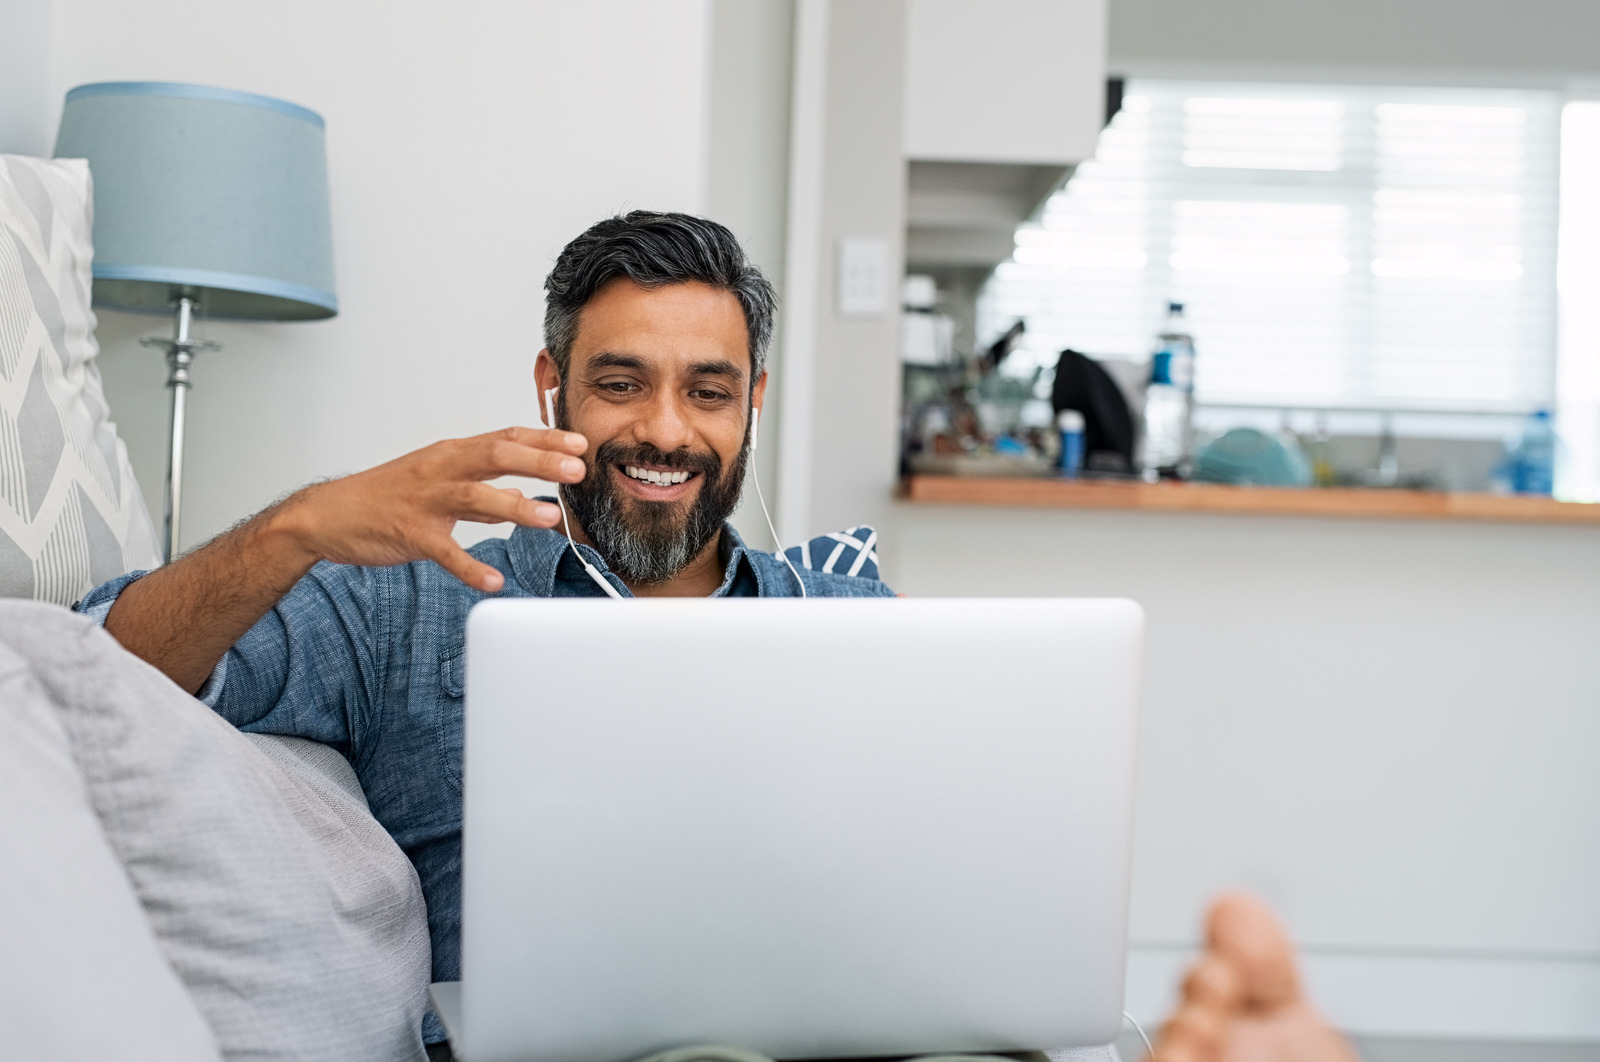 Connecting with Co-workers from Home